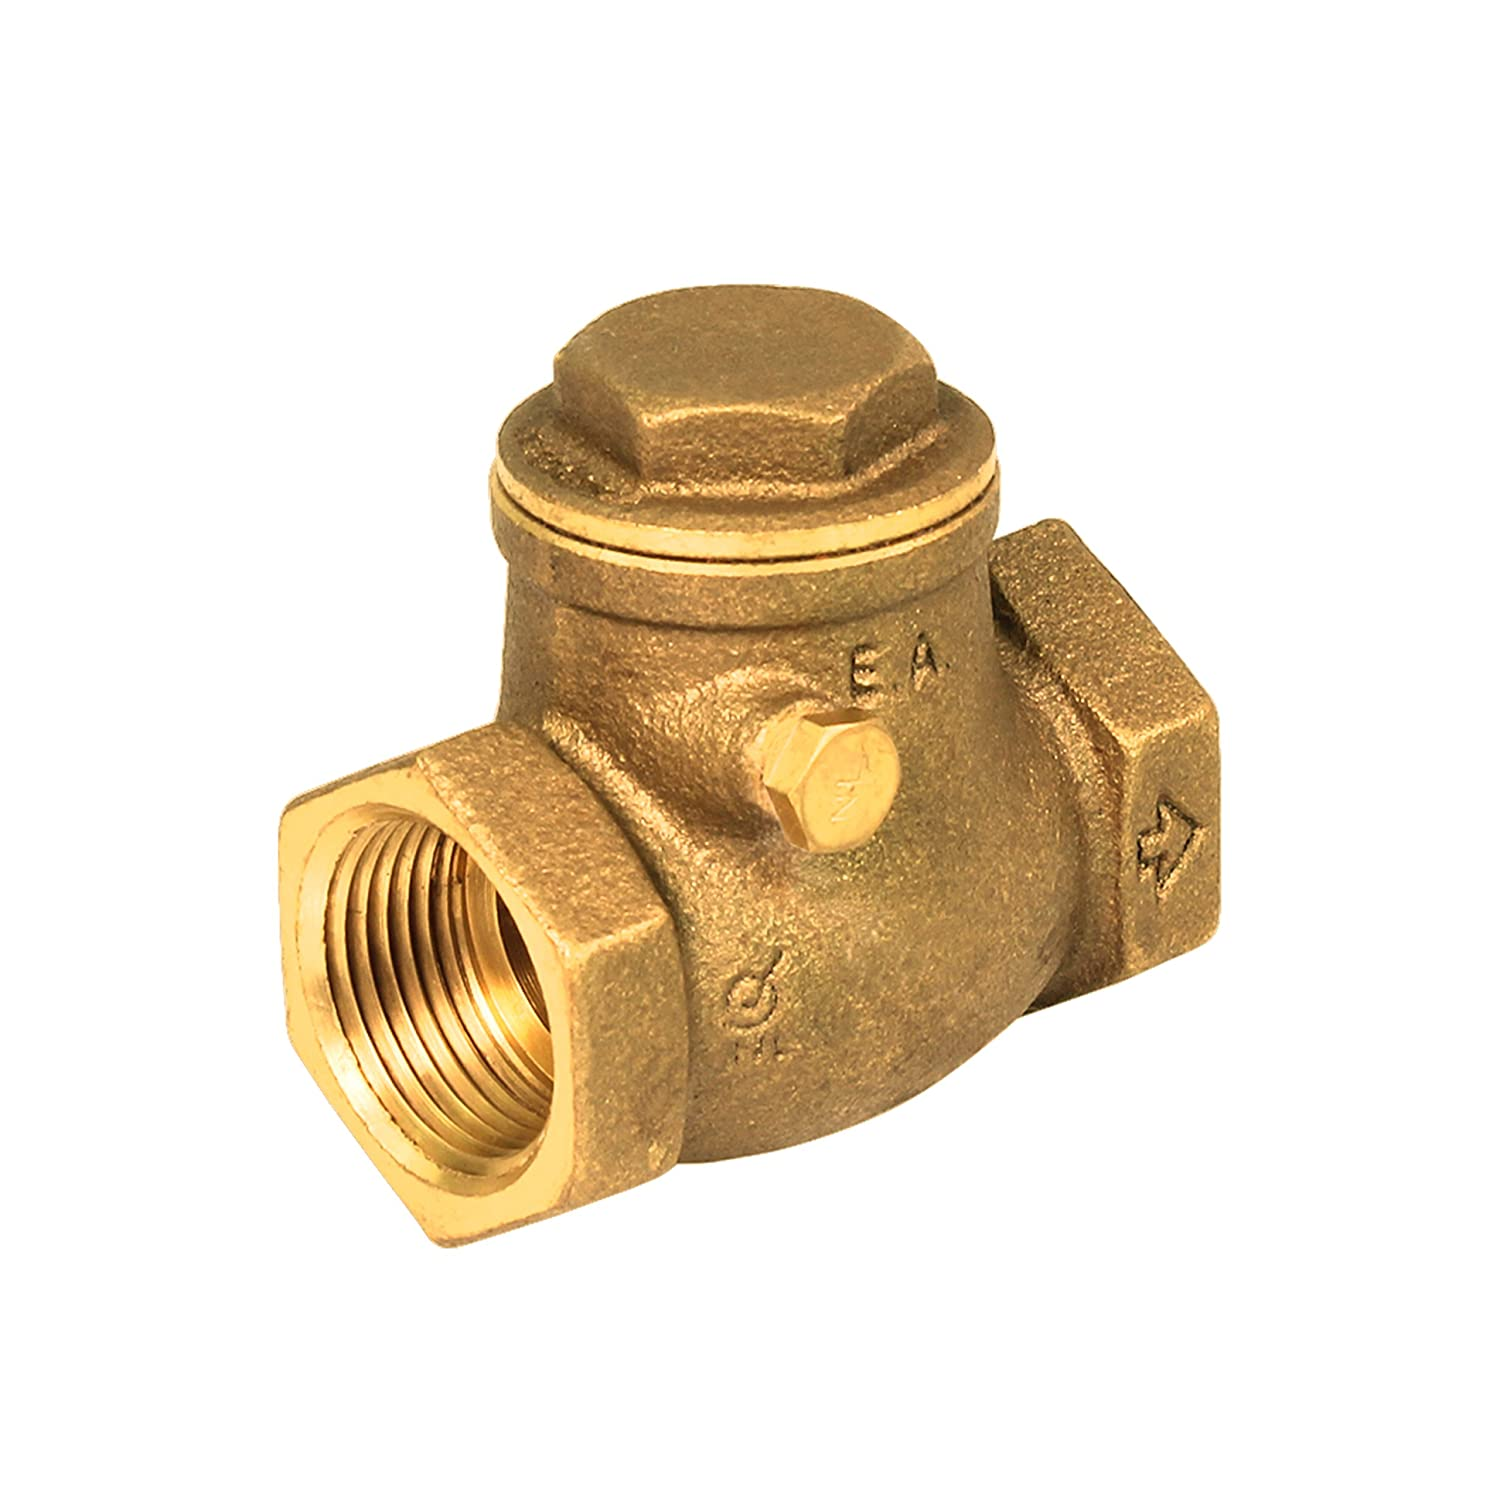 Brass Swing Check Valve Female IPS Iron Pipe Straight Thread Lead Free 1-1/2 Inch Everflow Supplies 210T112-NL